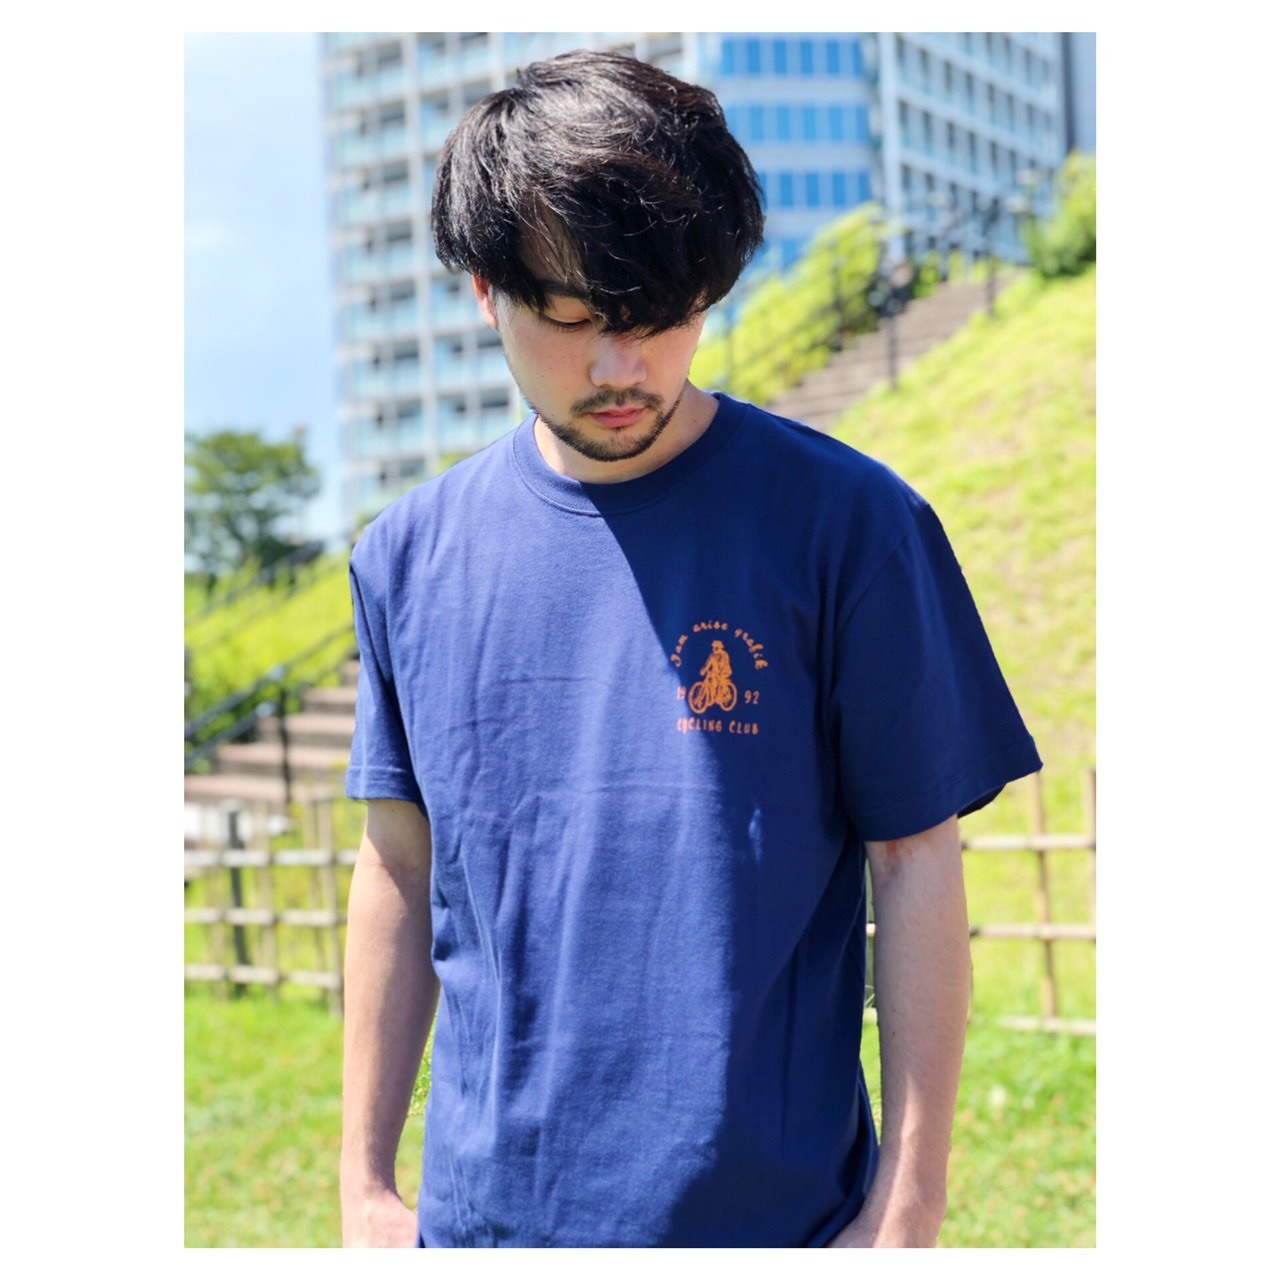 Cycling Club Tee-ネイビー